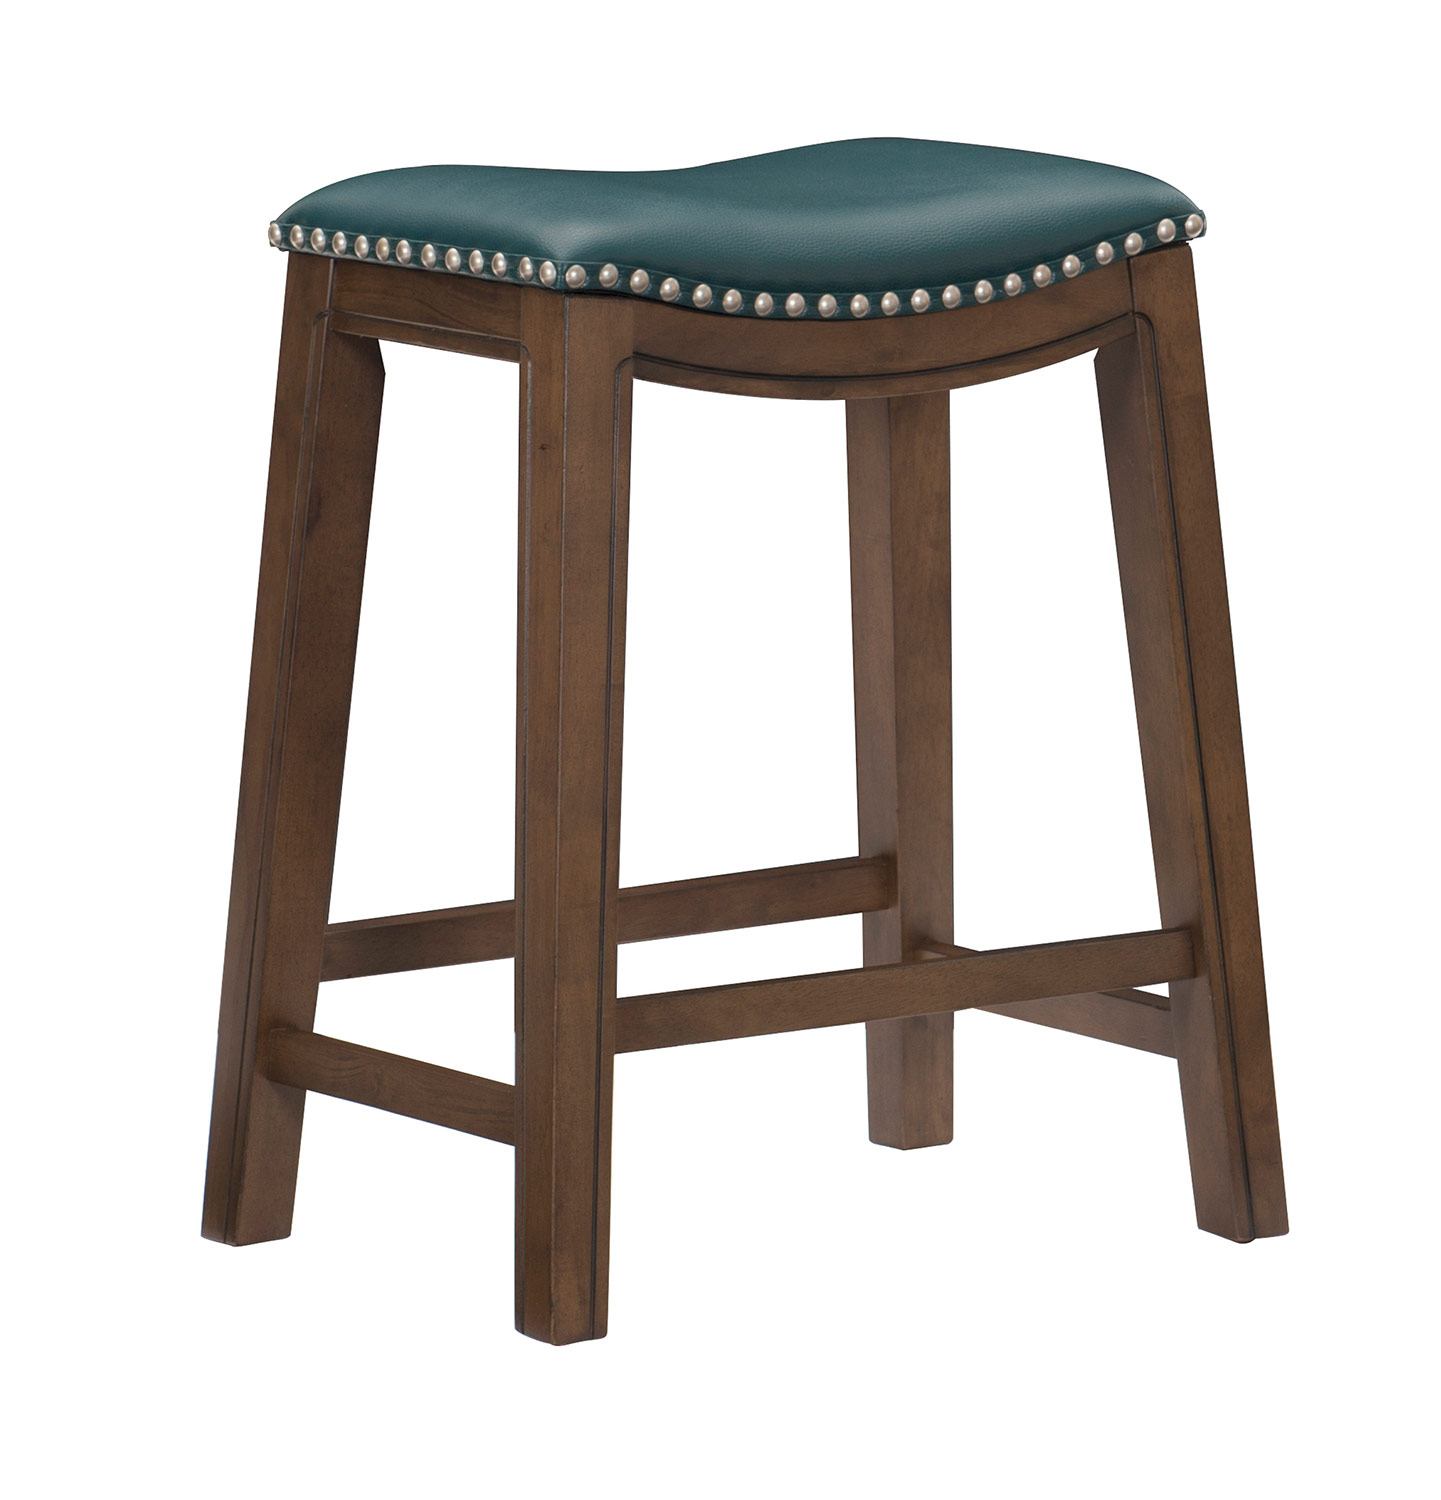 Homelegance 24 SH Stool - Green